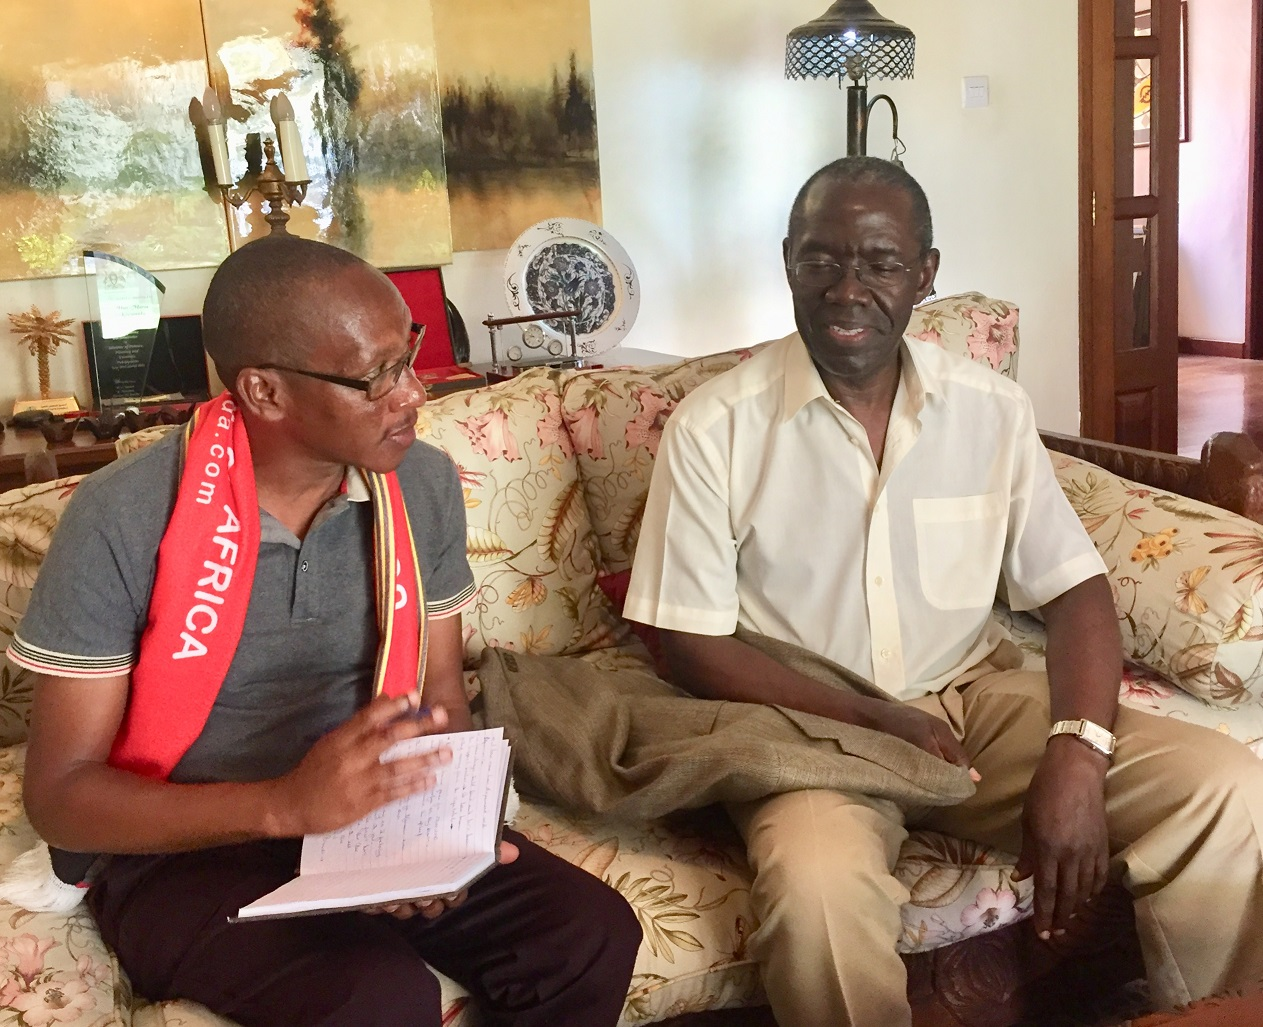 City tycoon Mohan Kiwanuka (R) during an interview at his home in Kololo recently (PHOTO/Courtesy)